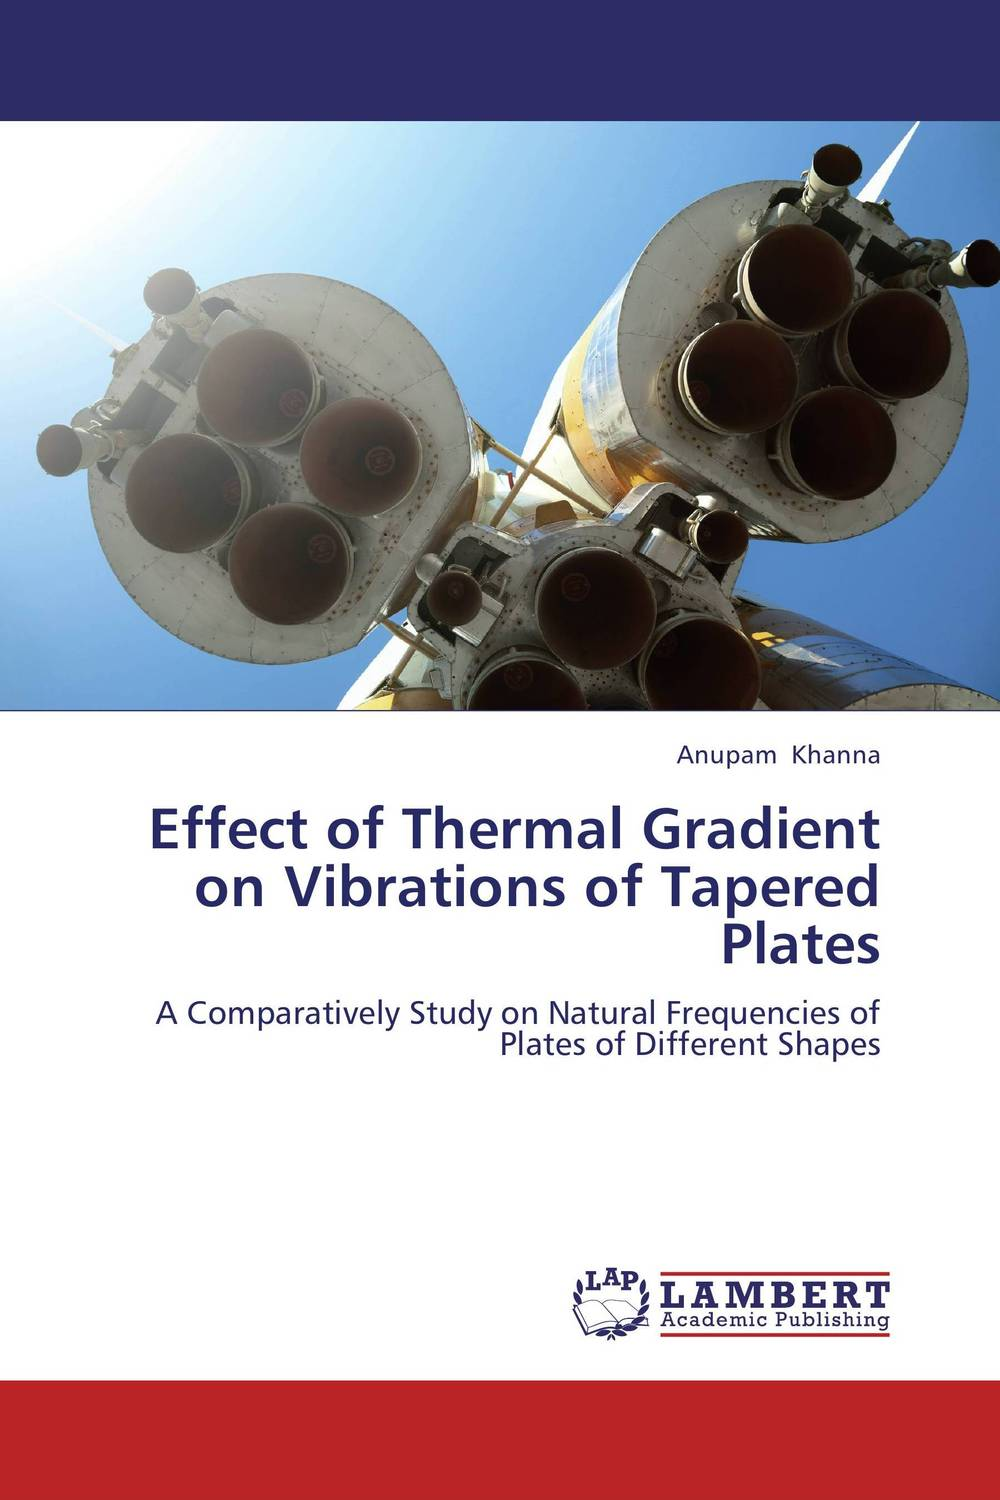 Effect of Thermal Gradient on Vibrations of Tapered Plates anupam khanna effect of thermal gradient on vibrations of tapered plates